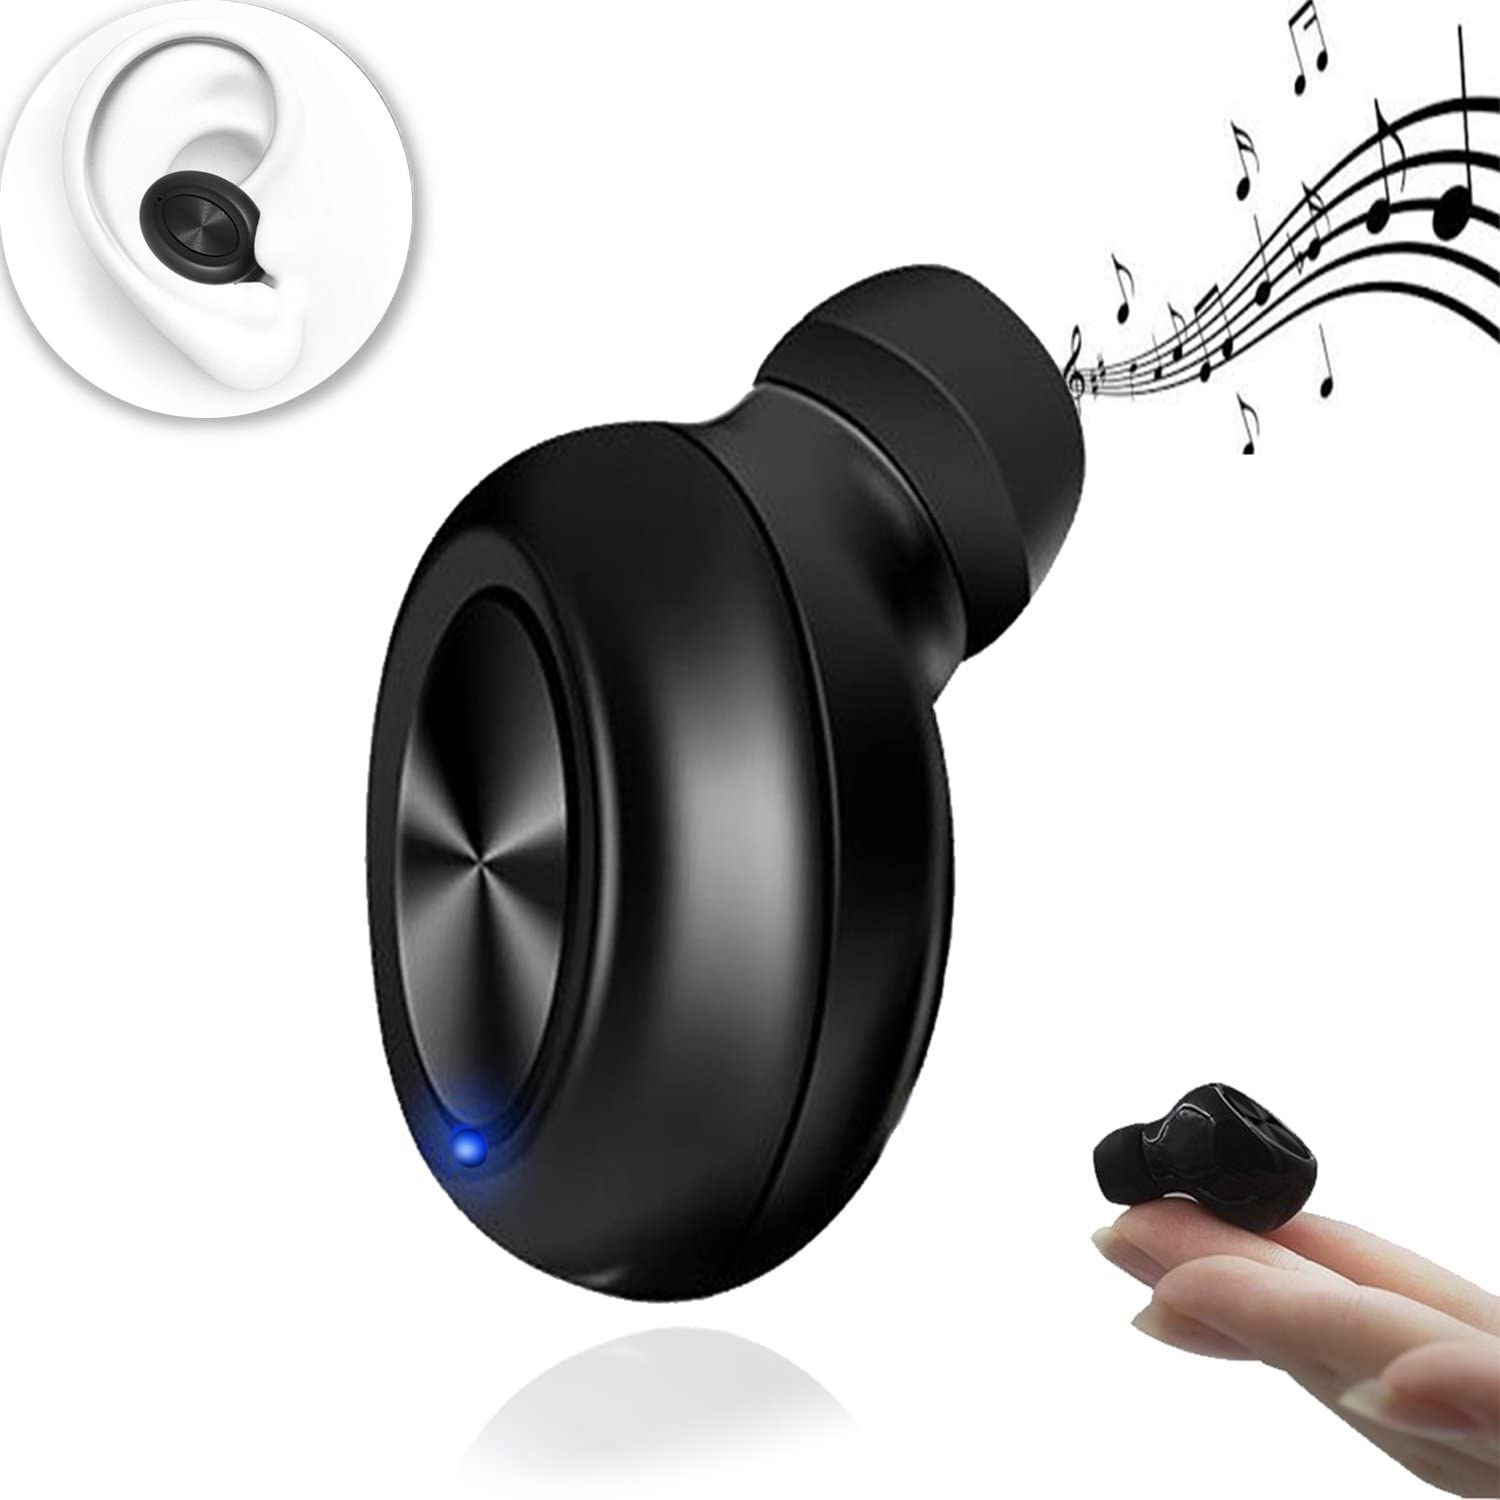 Amazon Com Bluetooth Earbud Headsets Invisible Wireless Smallest Headphones With 6 Hour Playtime Car Earpieces With Mic For Android Smart Phones Best Single Ear Mini Earphones Magnetic Charger